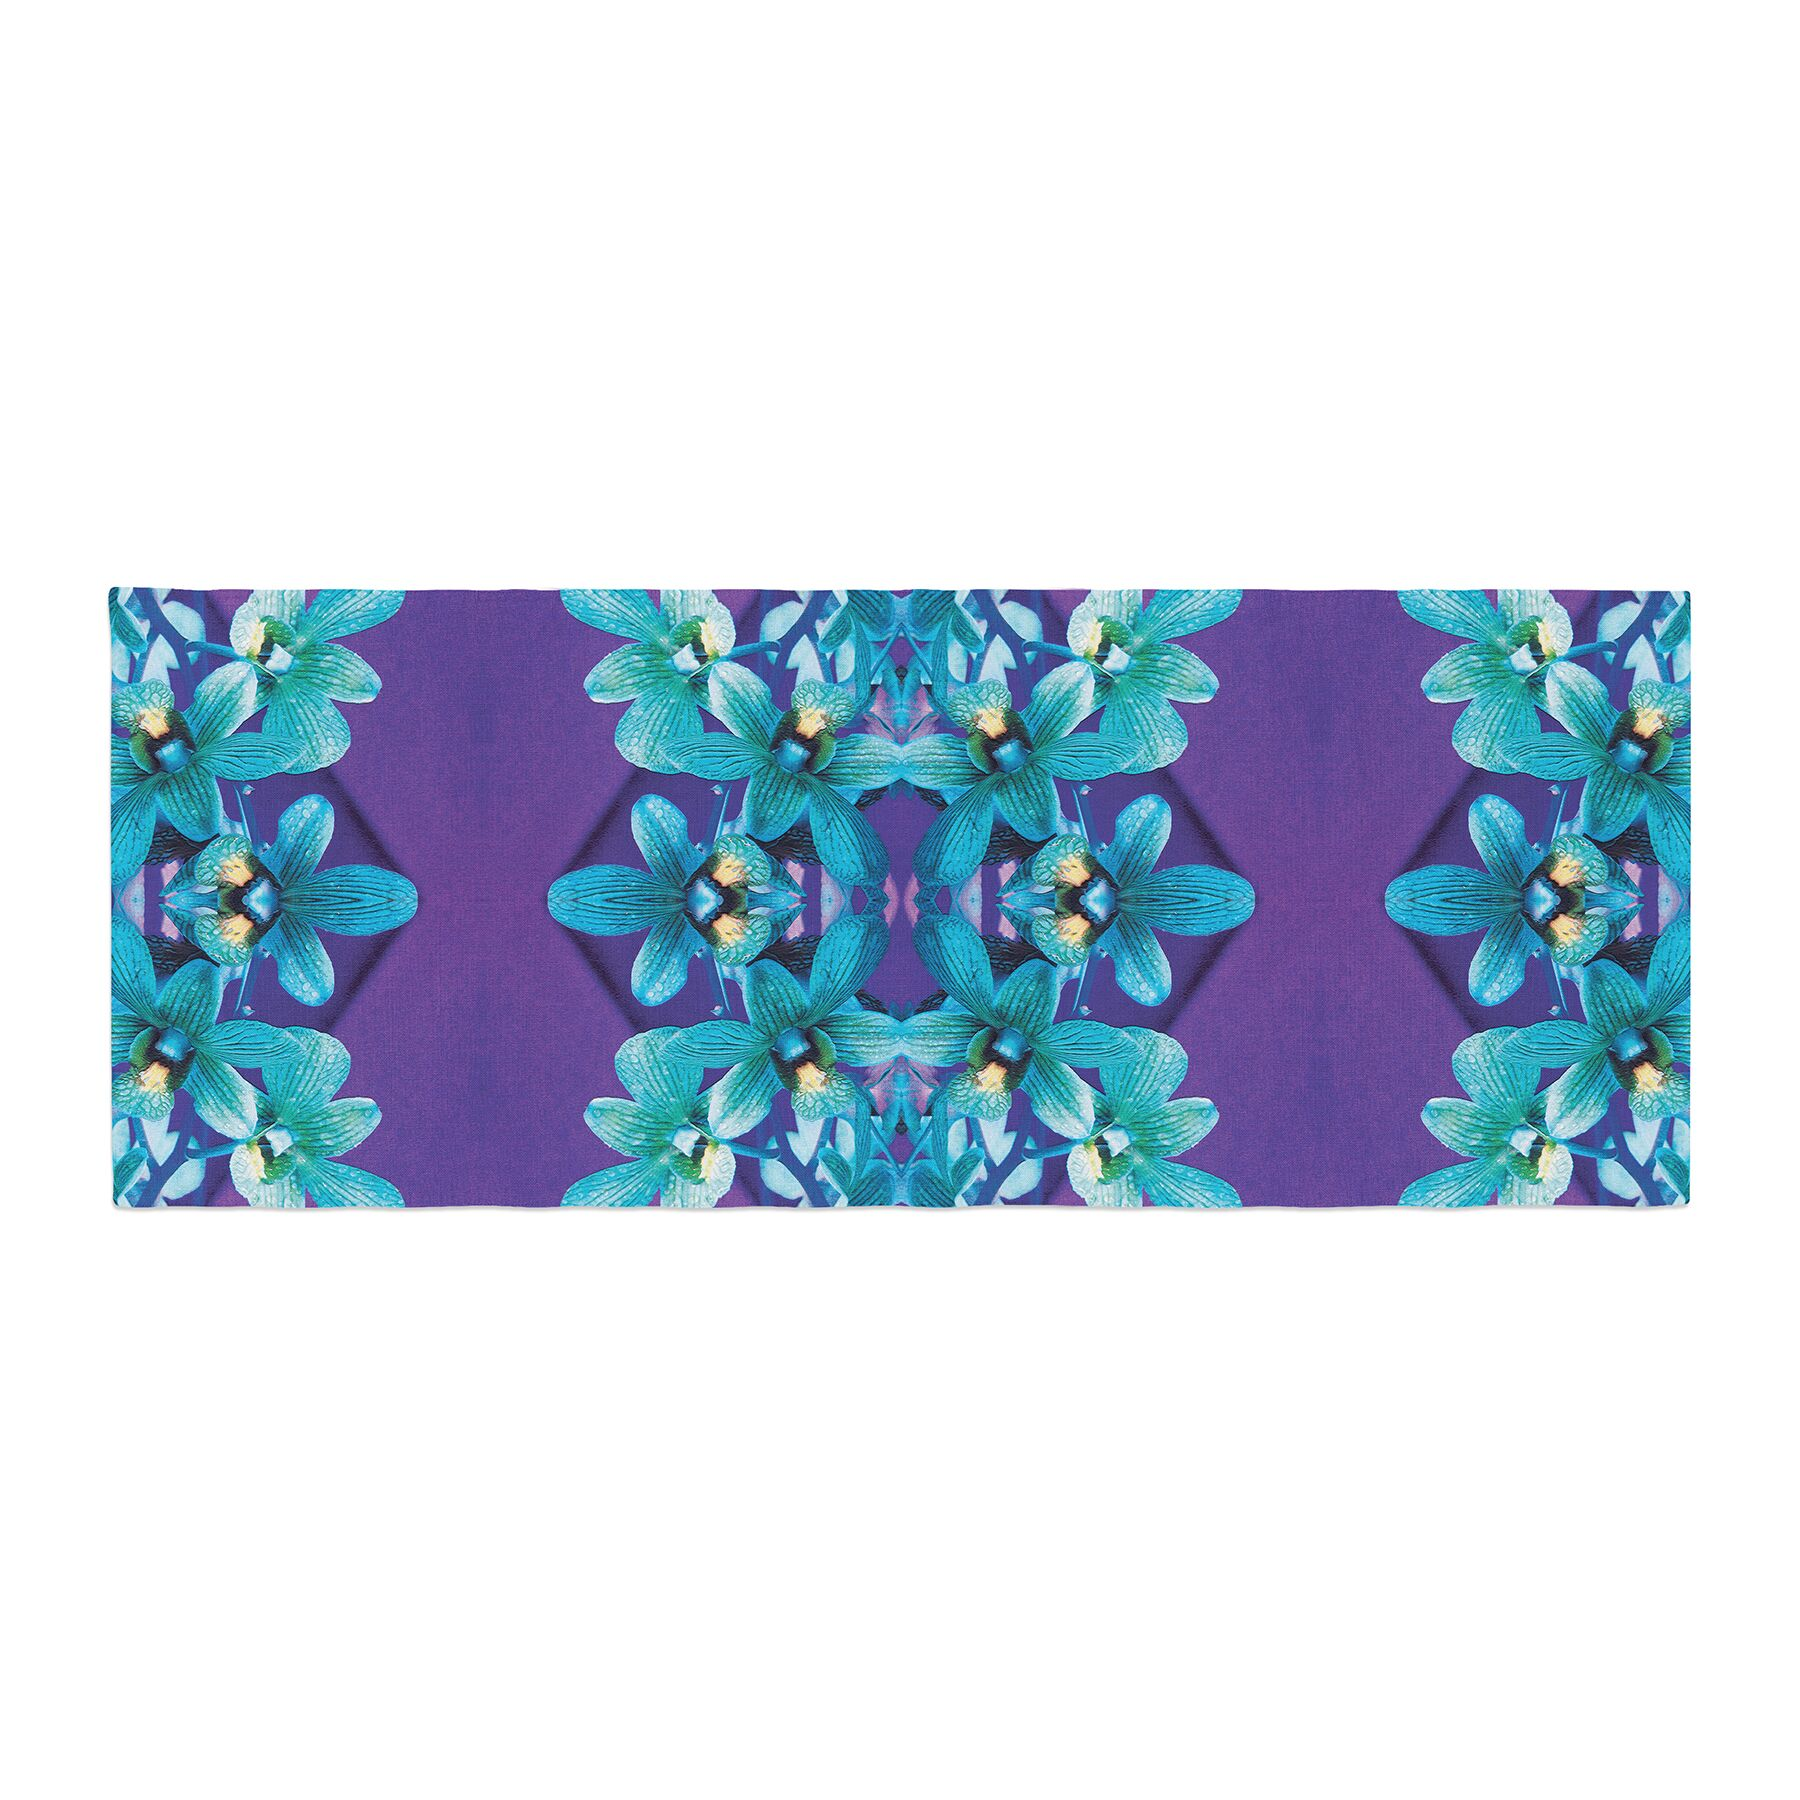 Dawid Roc Orchids Floral Bed Runner